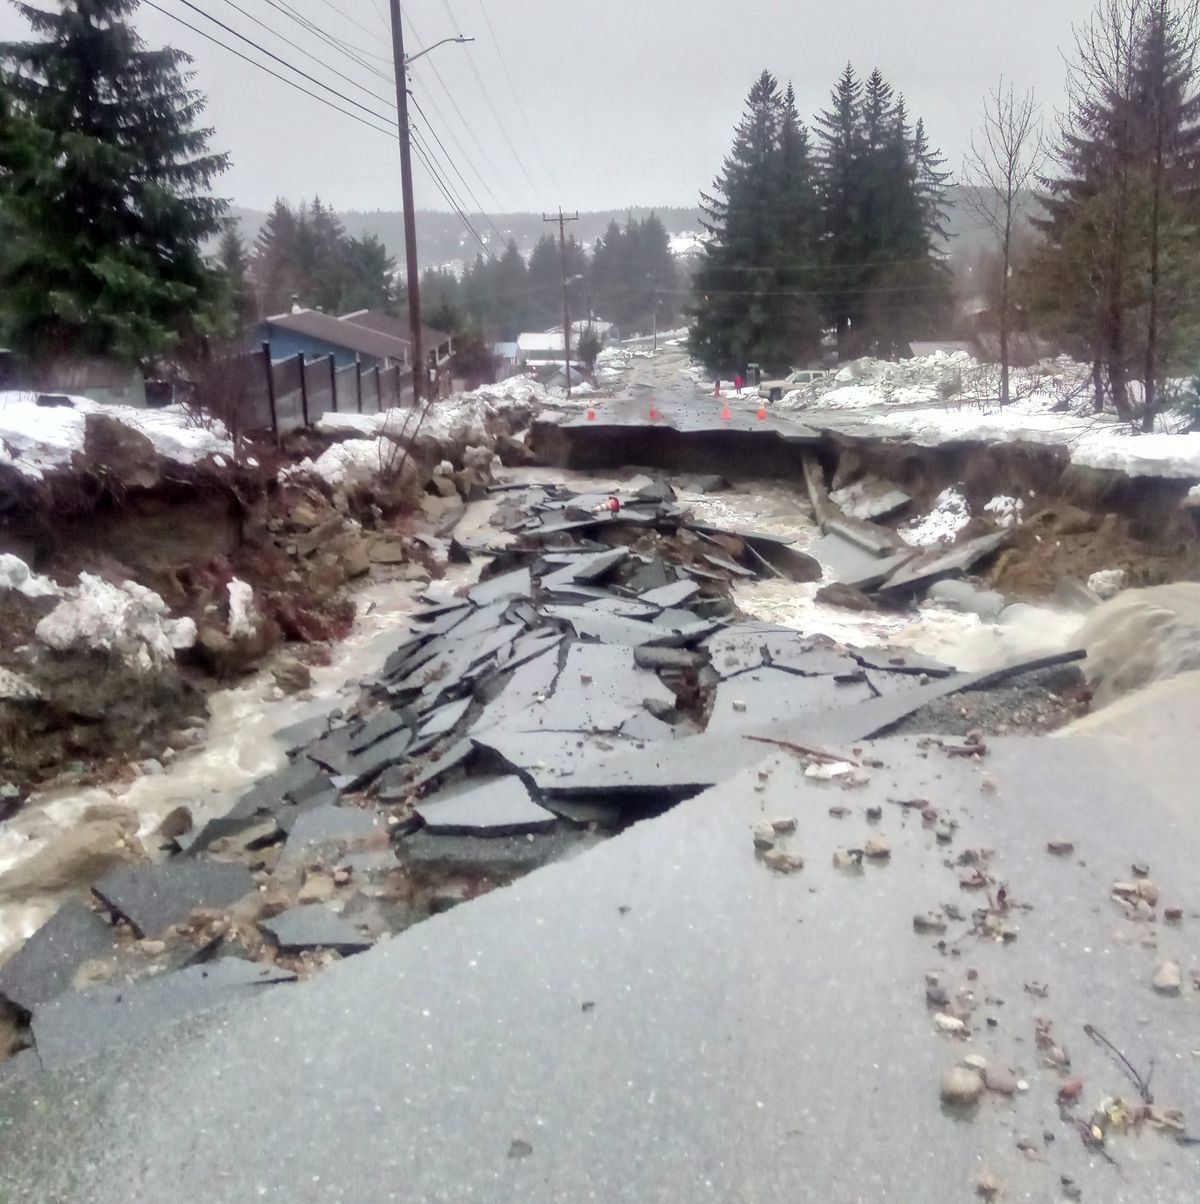 Many roads were heavily damaged in Haines after heavy rain and flooding on Wednesday. (Photo provided by Darwin Feakes)